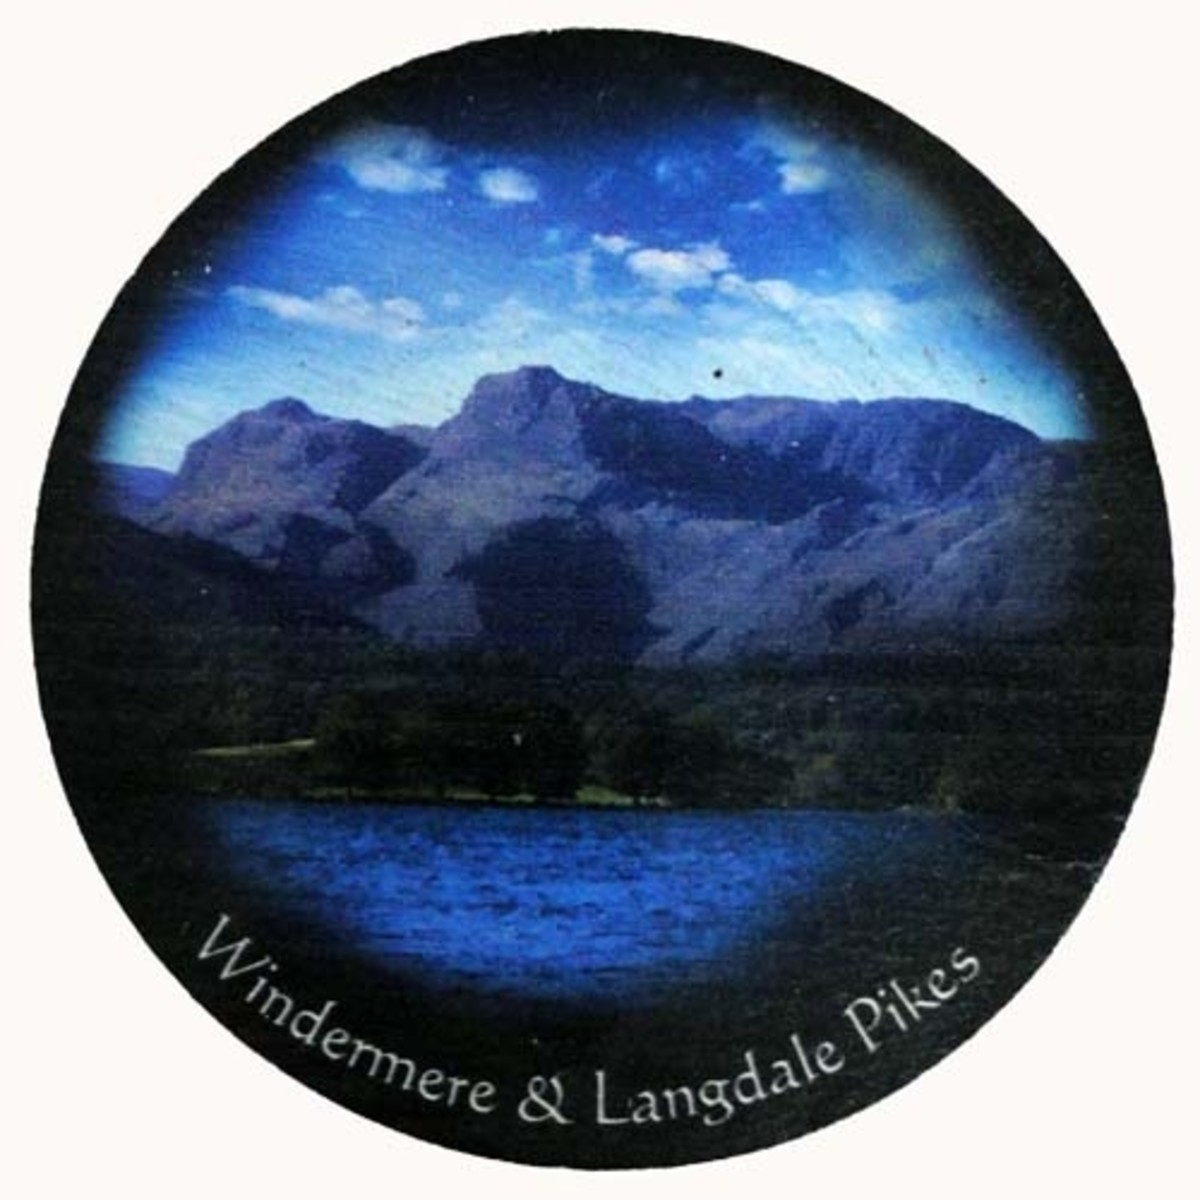 Slate coaster of Windermere and Langdale Pikes in the Lake District, England.